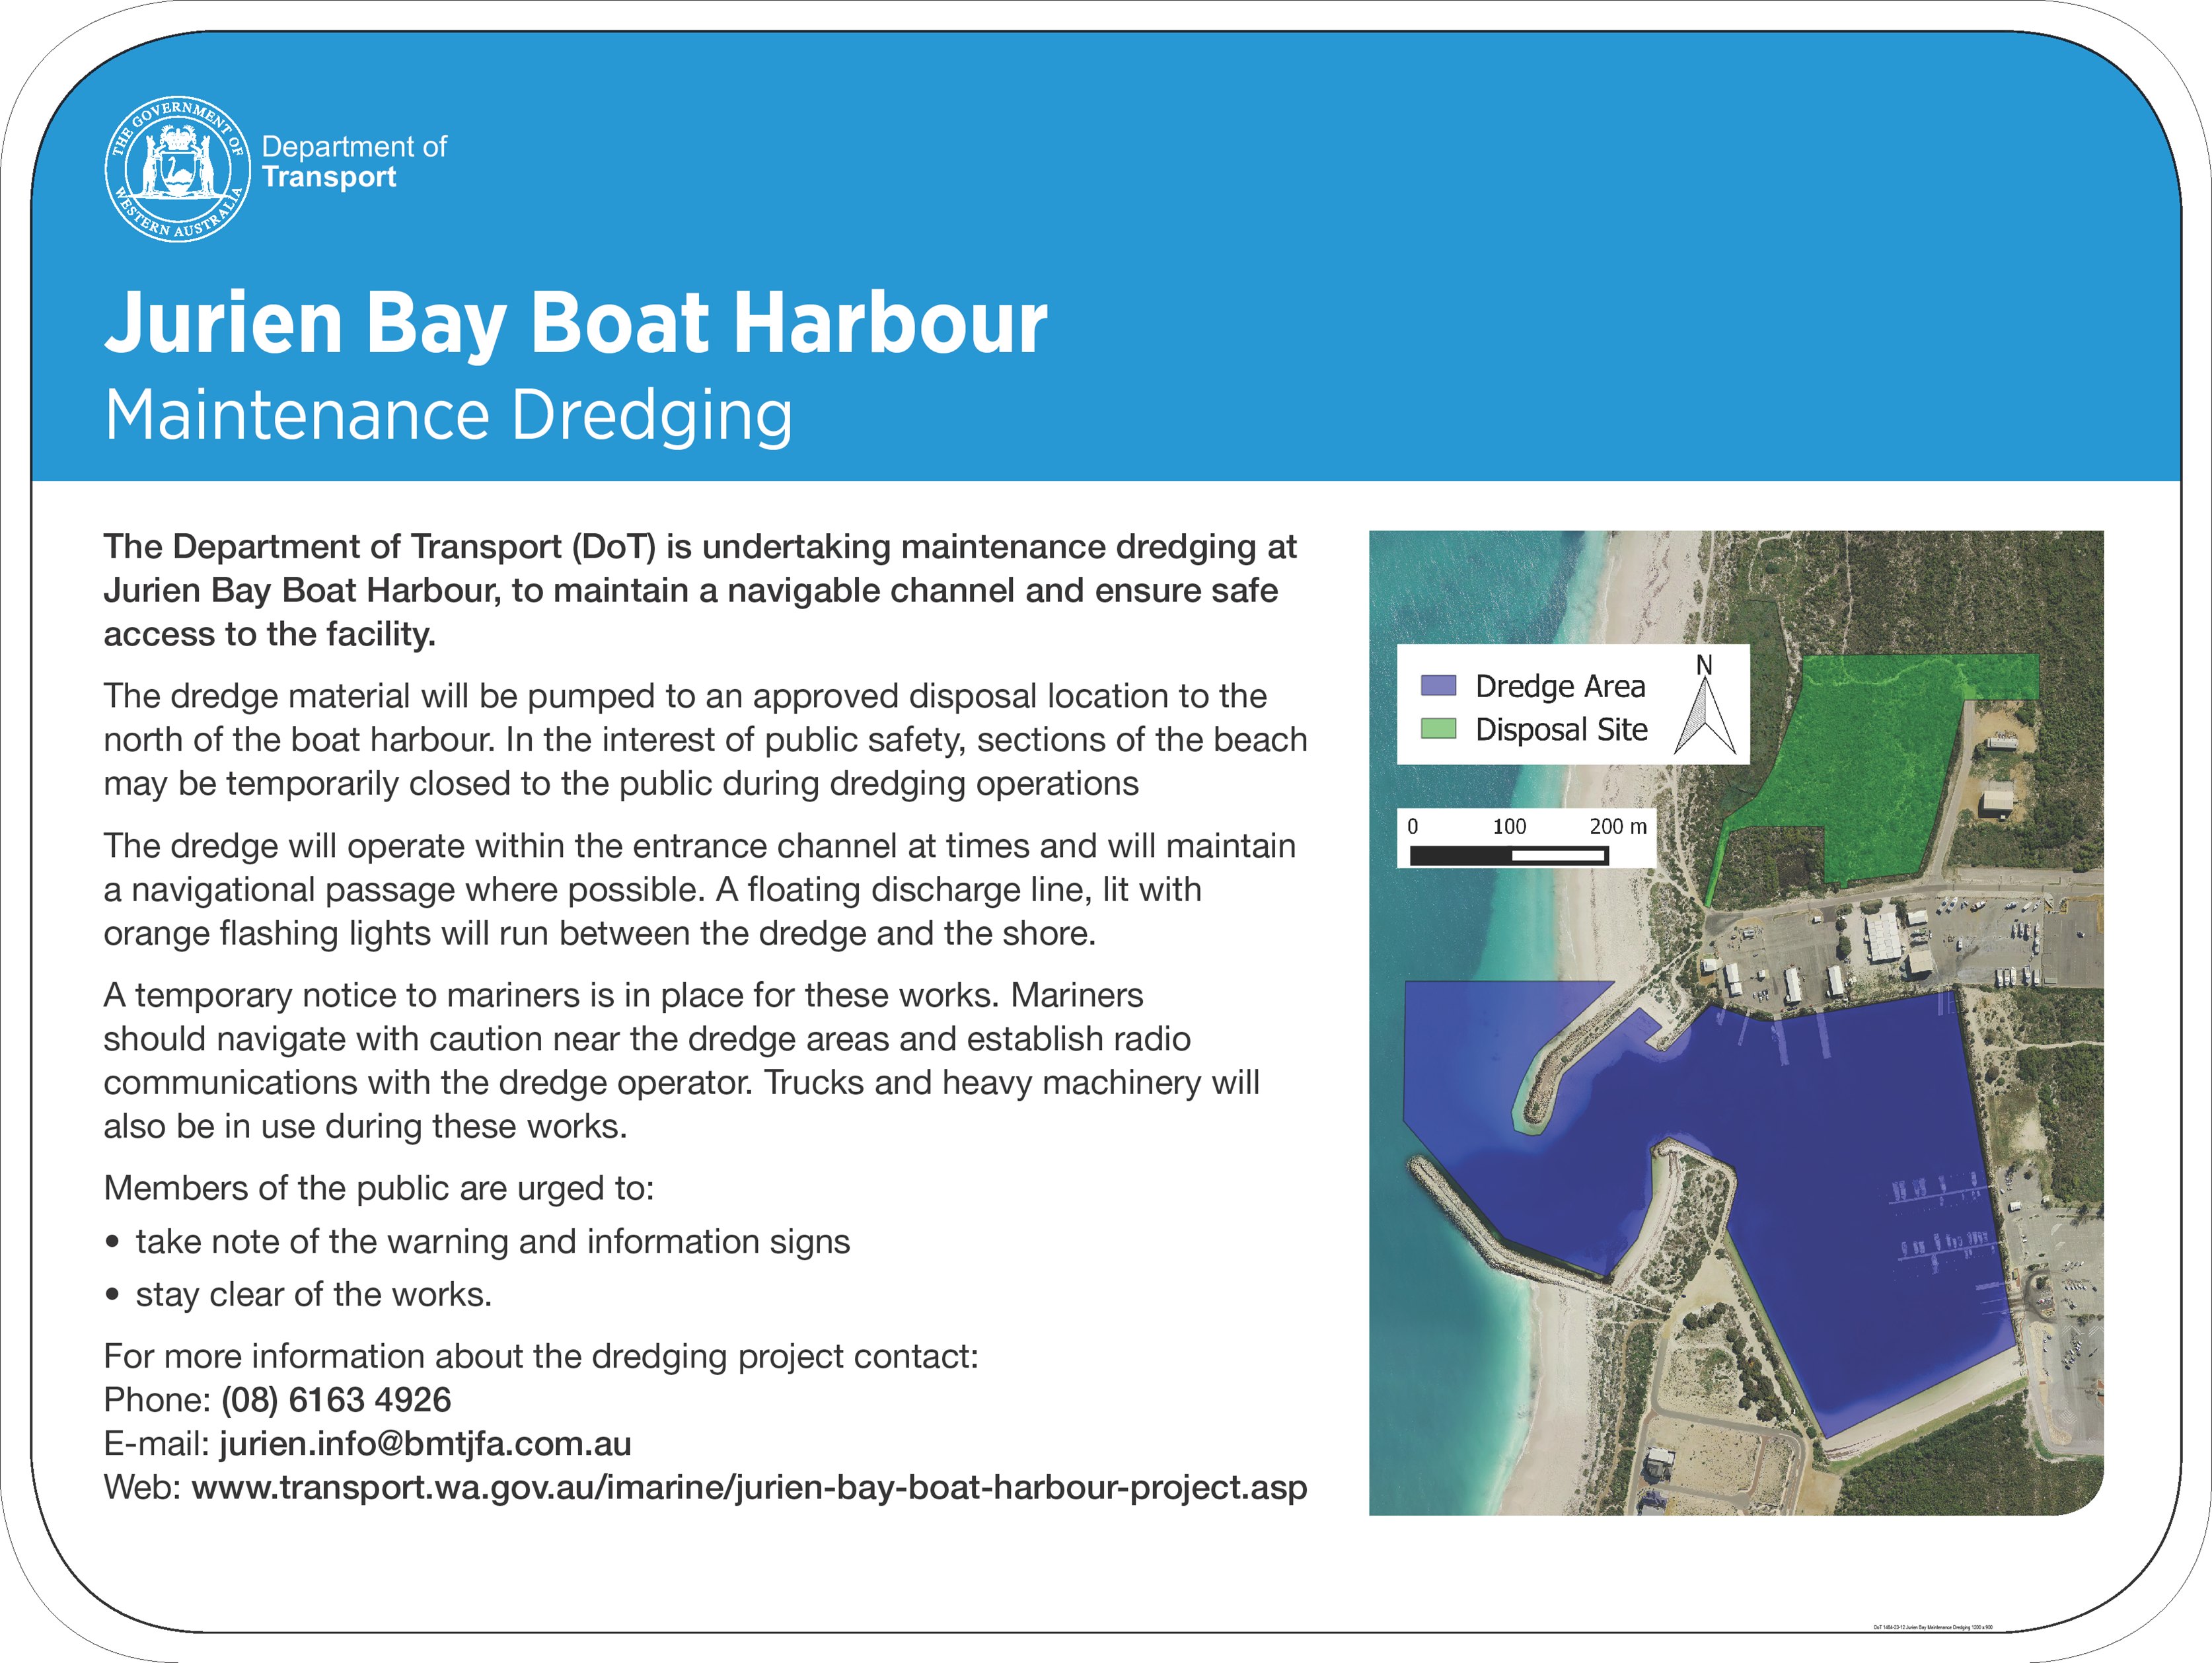 Jurien Bay Boat Harbour Maintenance Dredging - Notification of Commencement of Operations